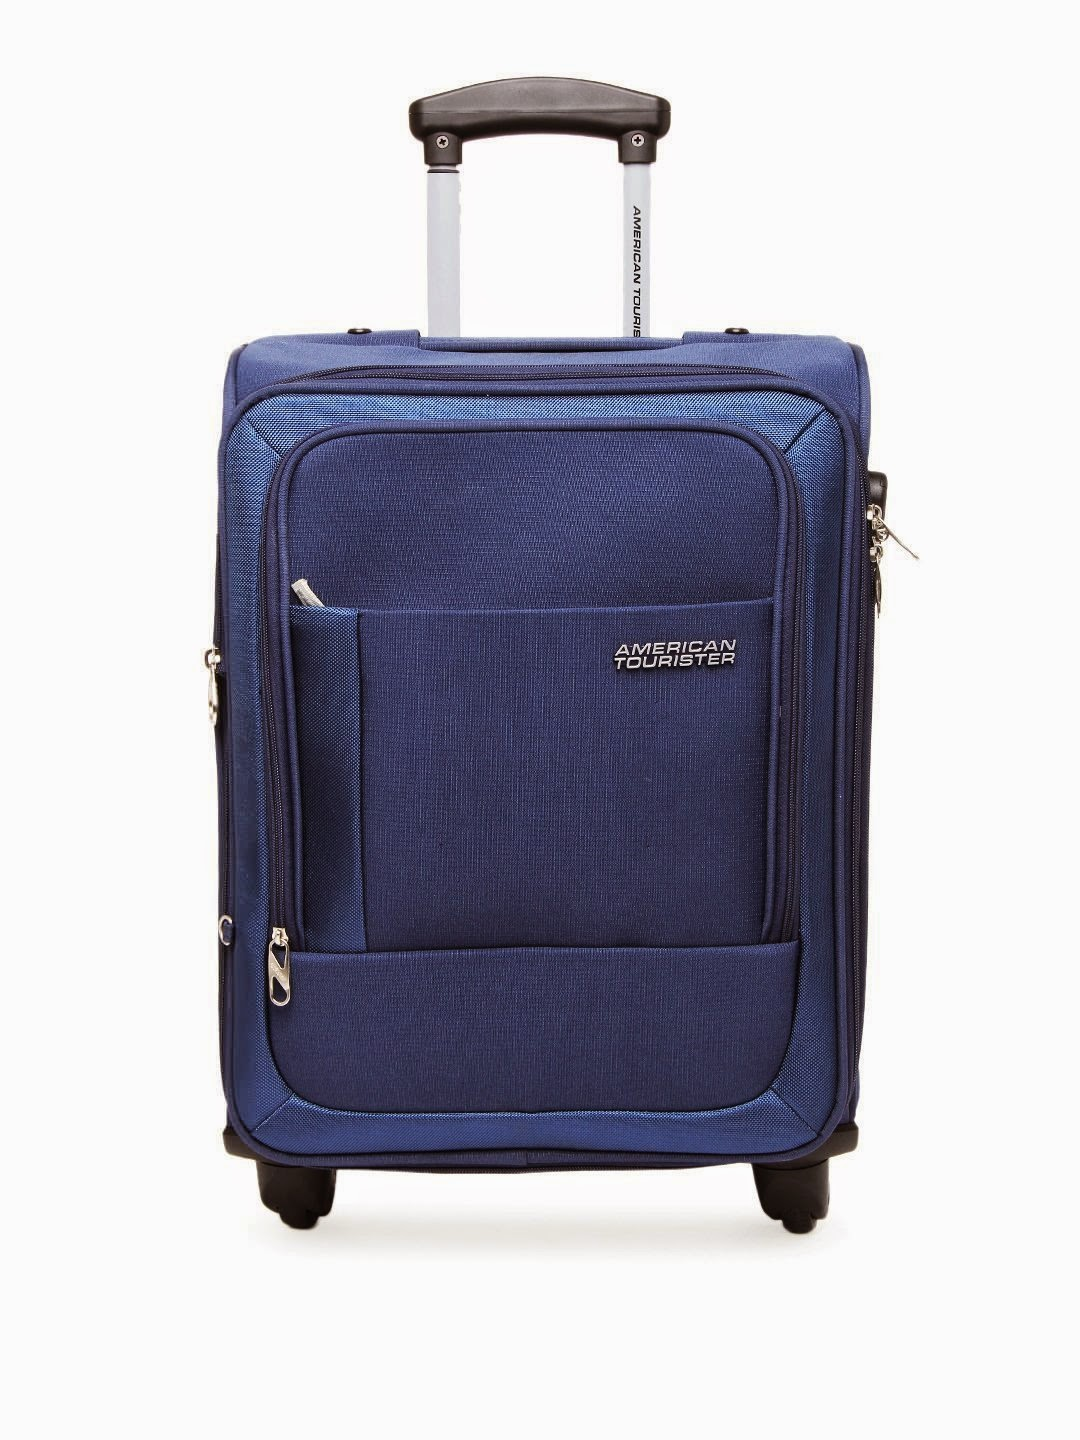 American Tourister Malta Spinner Polyester 55 cms luggage bag for Rs 3695